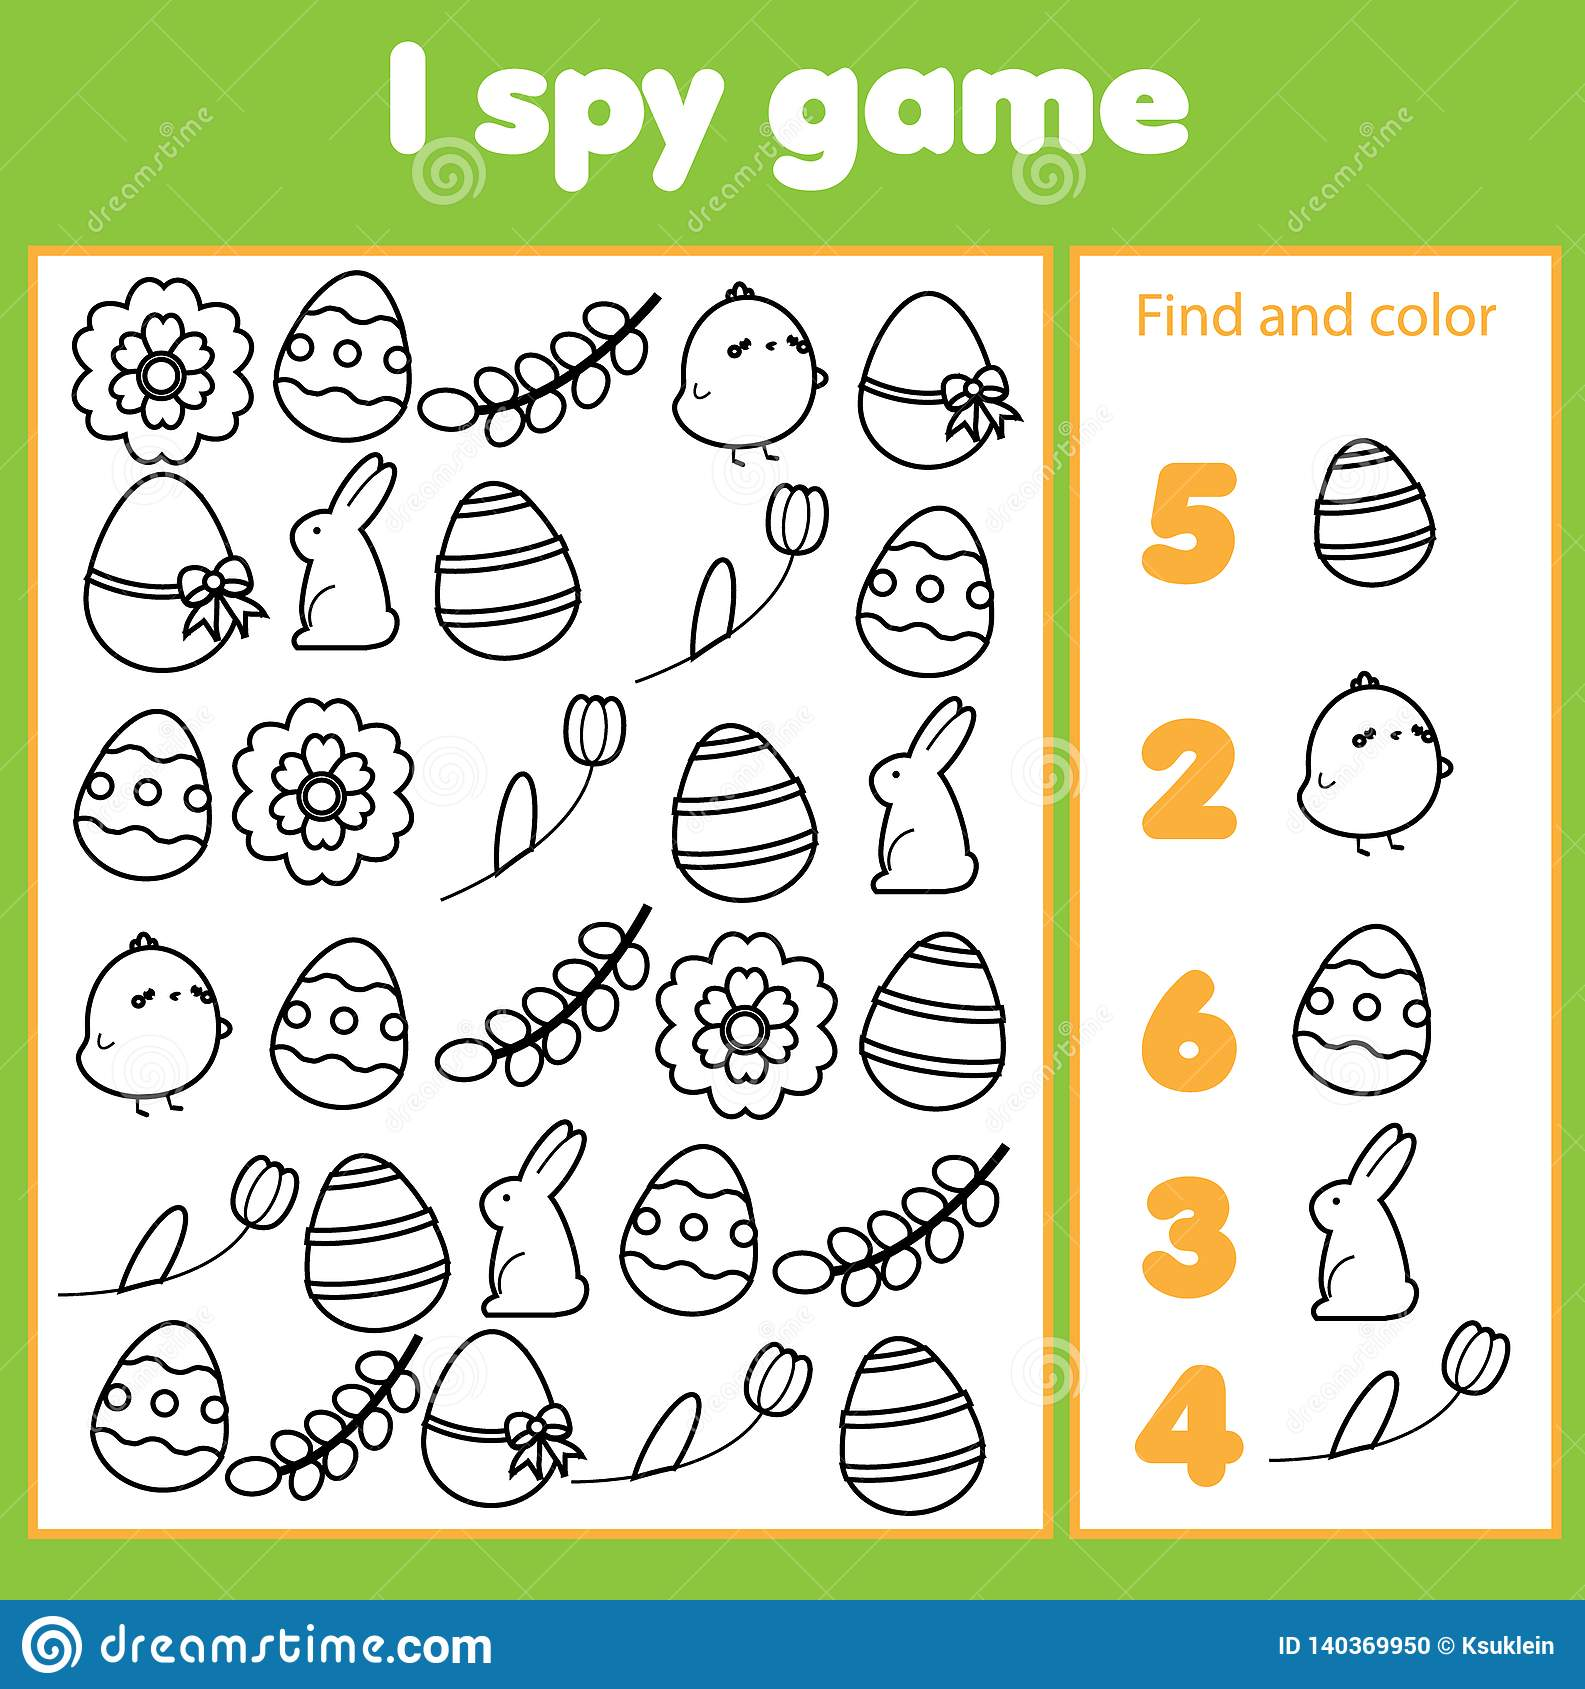 Educational Children Game I Spy Sheet For Toddlers Find